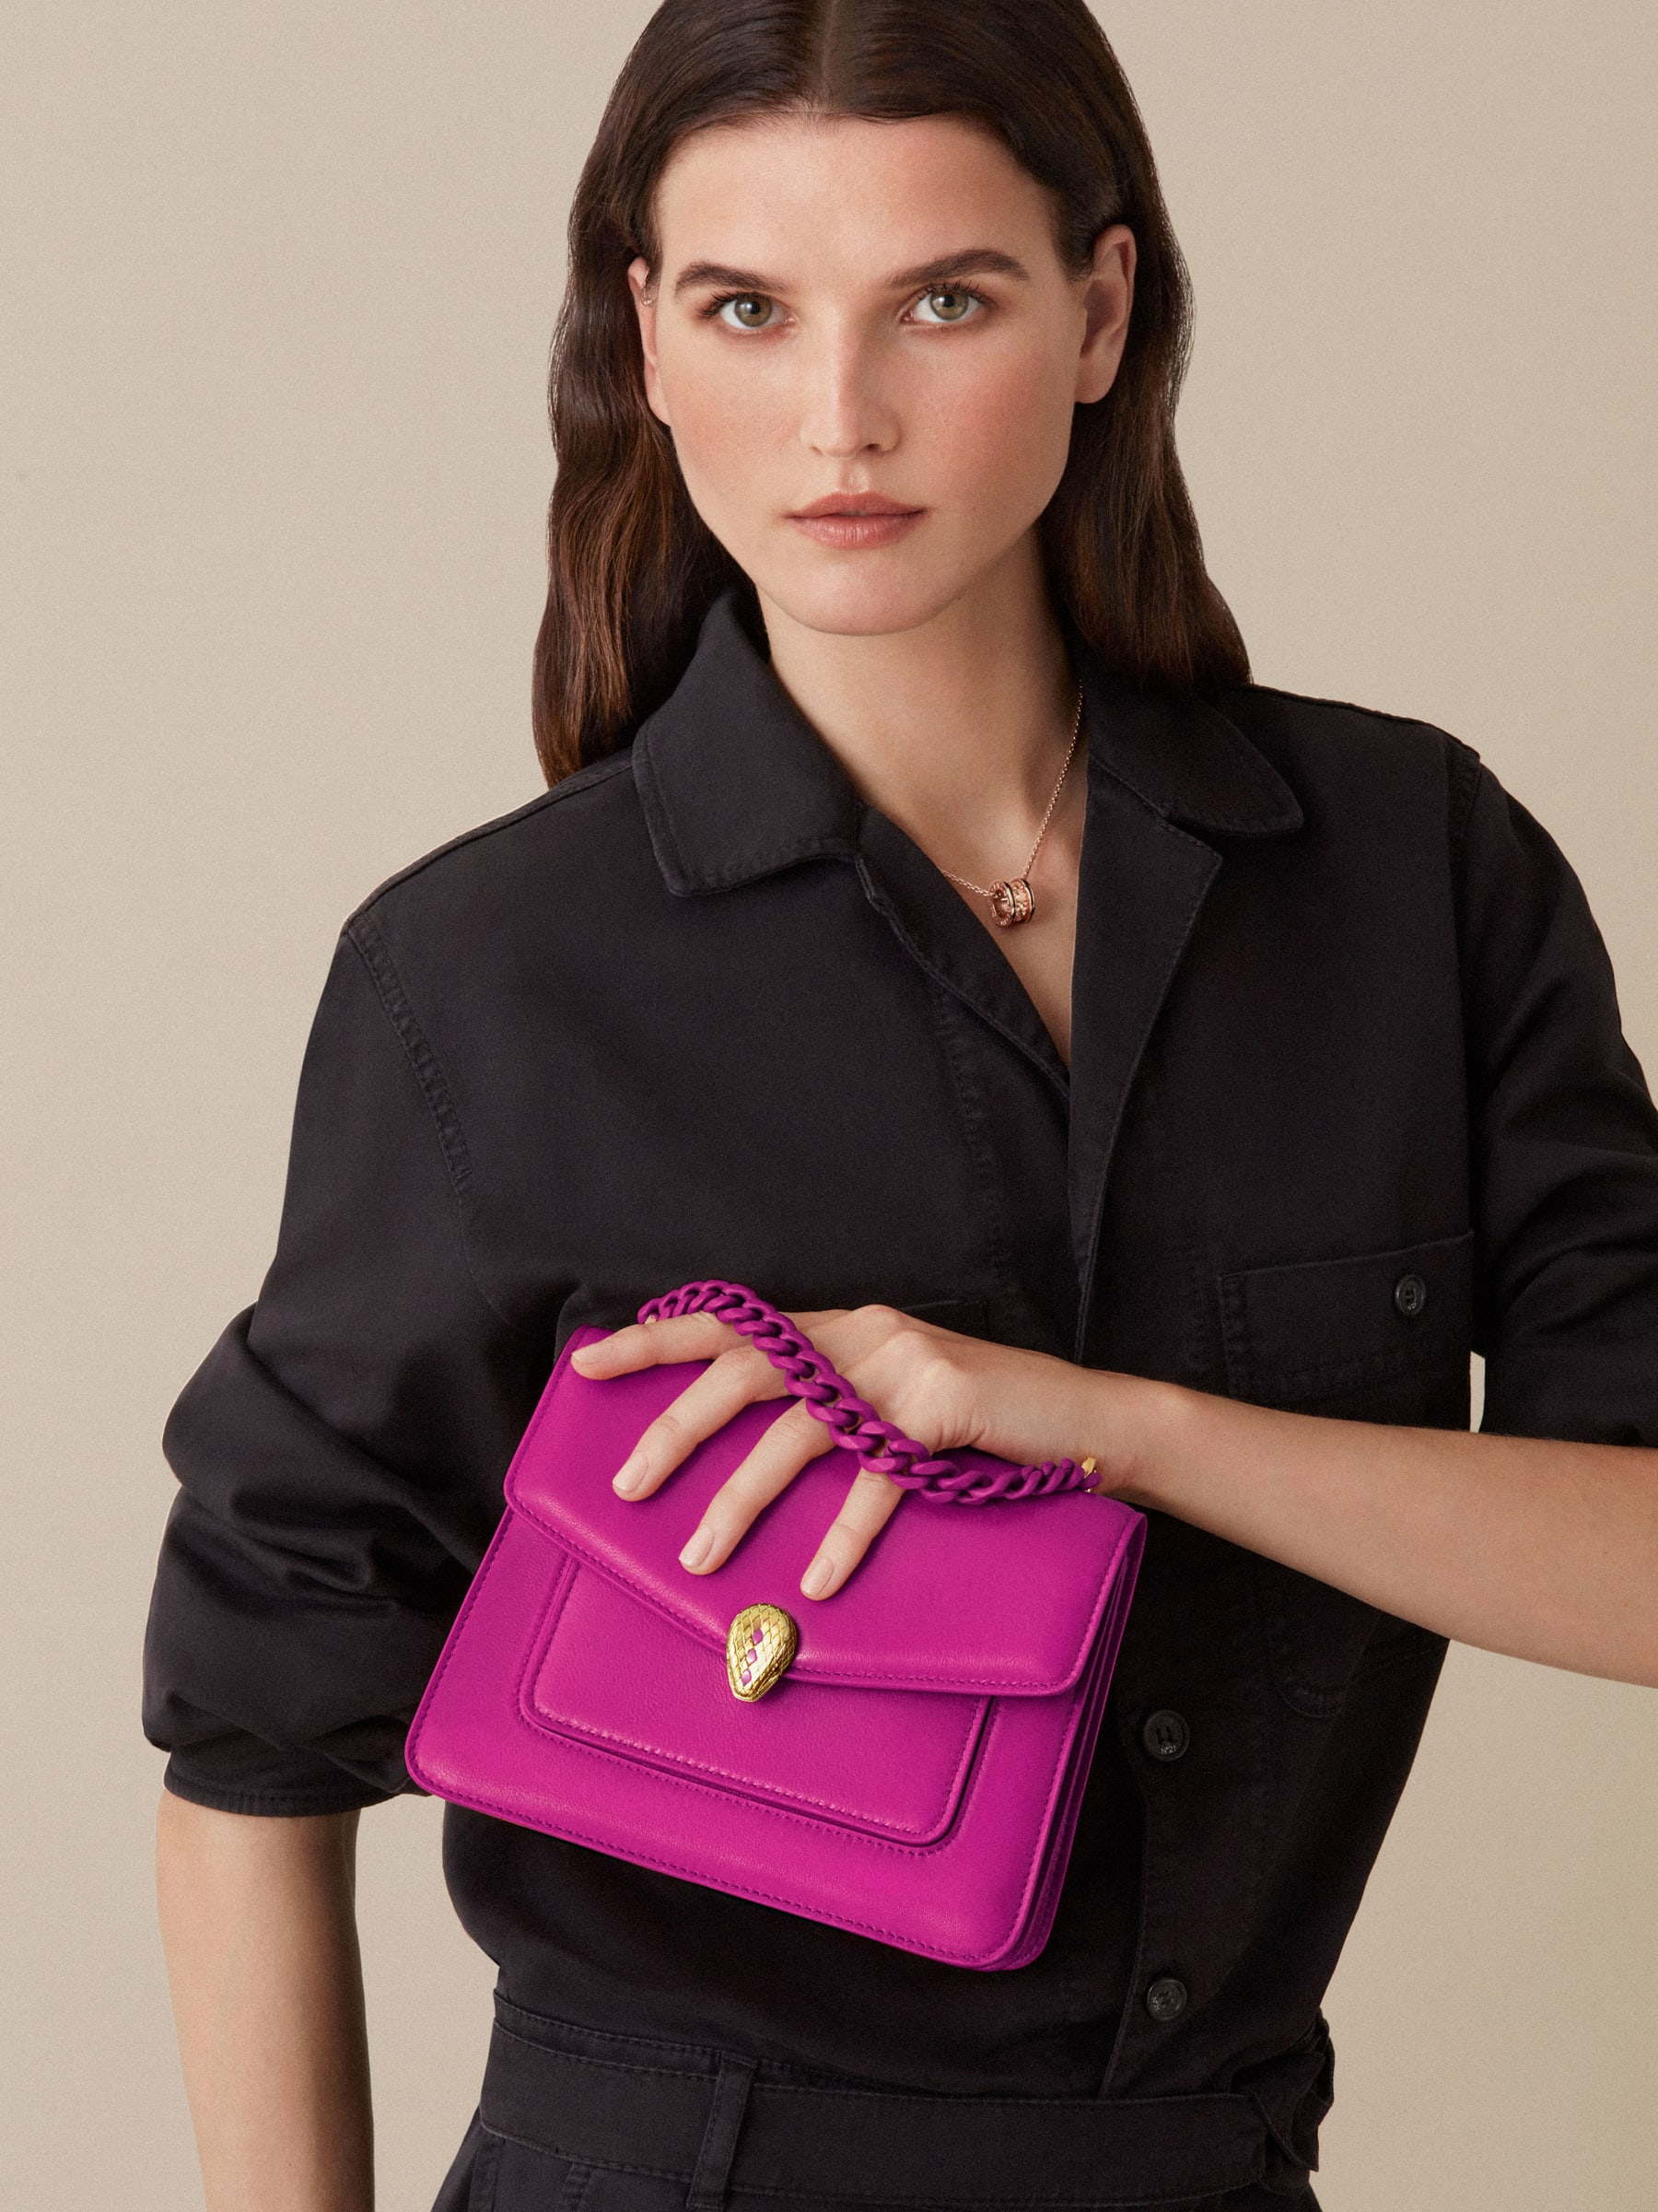 """Serpenti Forever"" small maxi chain crossbody bag in Magenta Spinel purple nappa leather, with Roman Garnet Bordeaux nappa leather inner lining. New Serpenti head closure in gold-plated brass, finished with small purple rhodonite scales in the middle and red enamel eyes. 1134-MCN image 6"